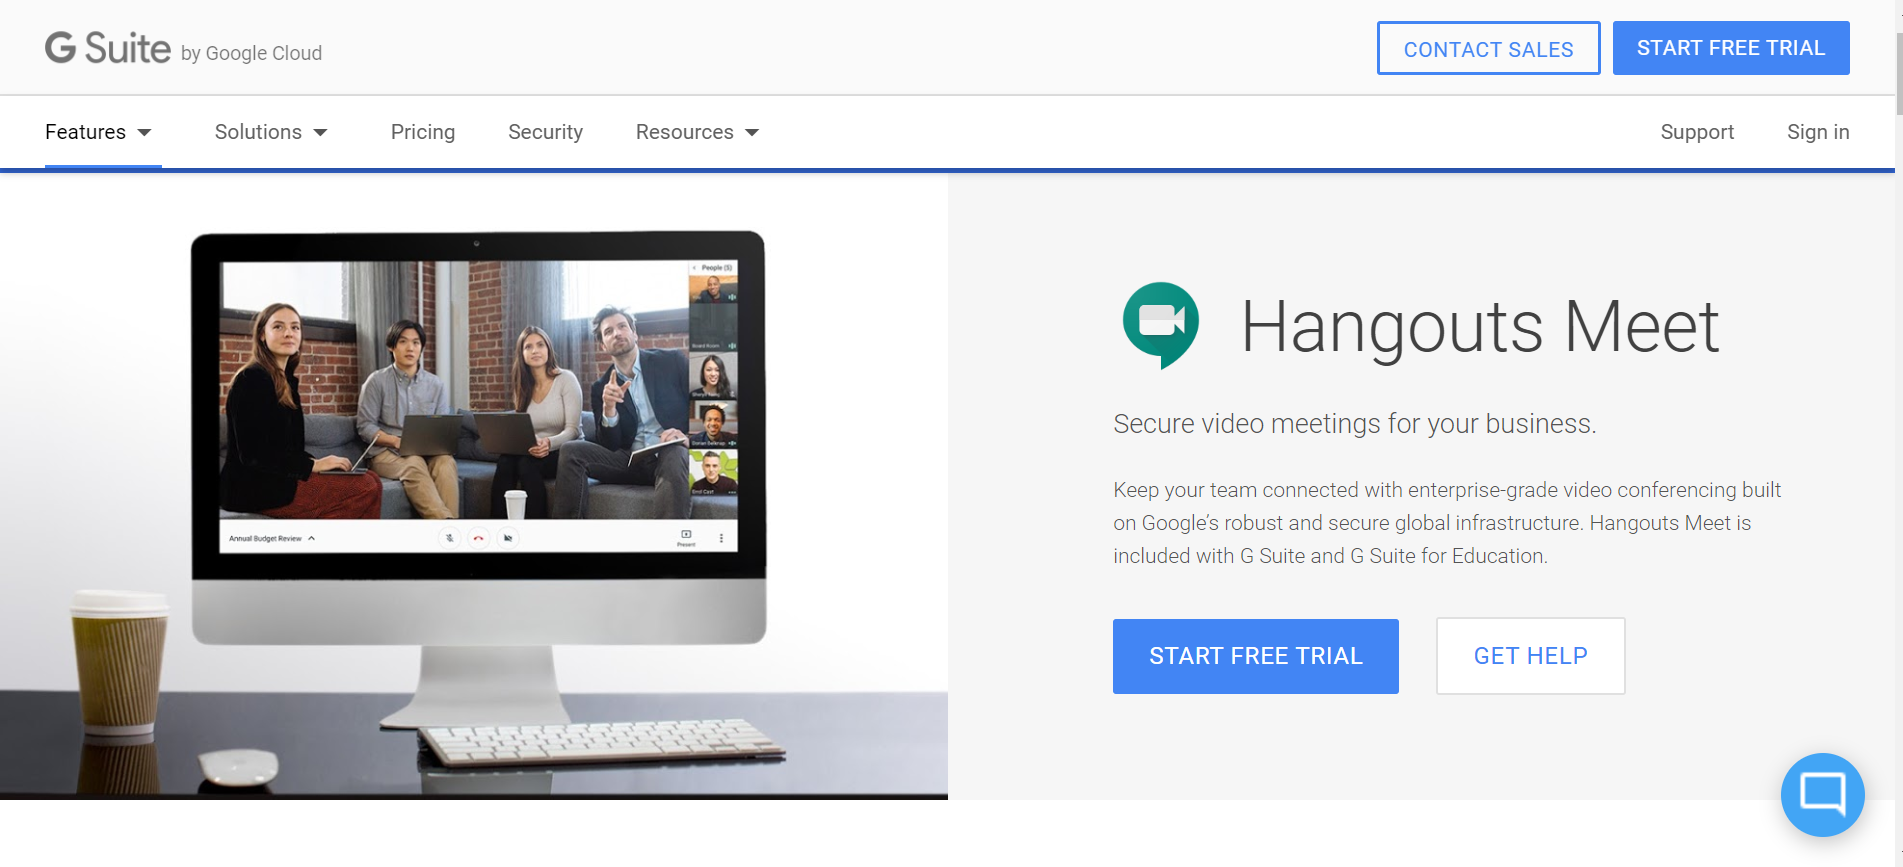 Google Hangouts Meet Online Video Conferencing G Suite